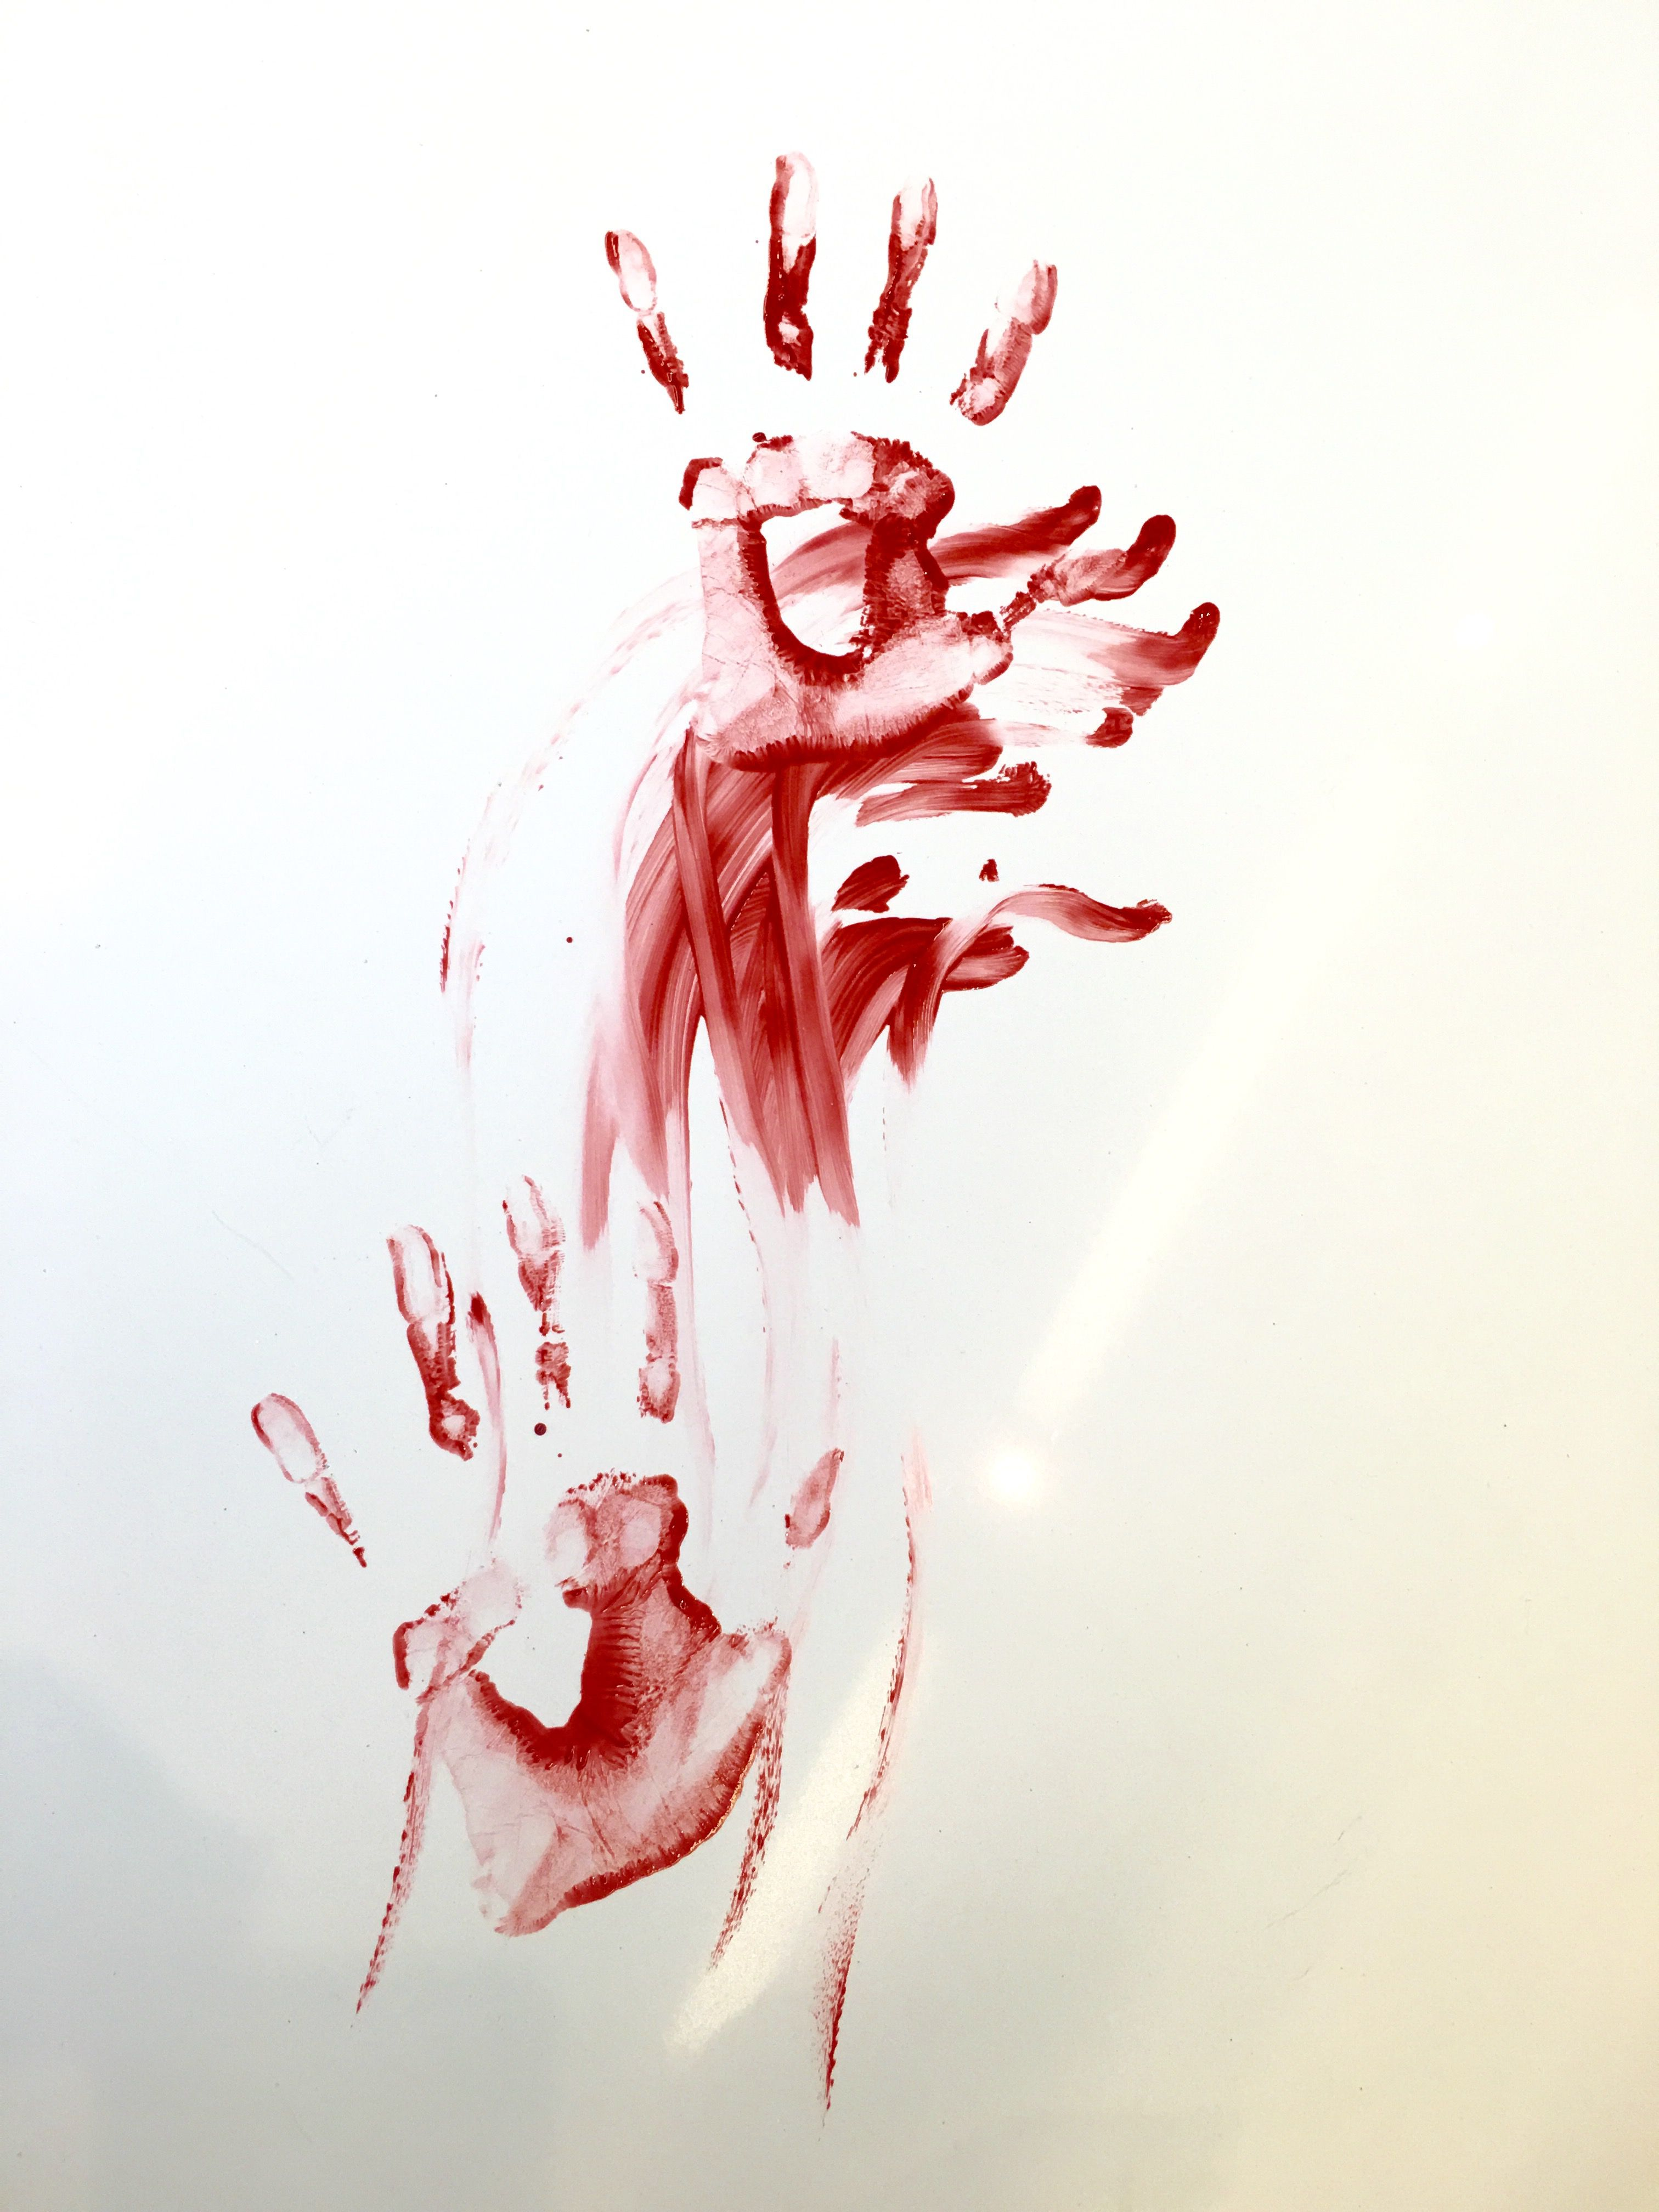 3024x4032 How To Make Realistic Fake Blood For Halloween Easy Homemade